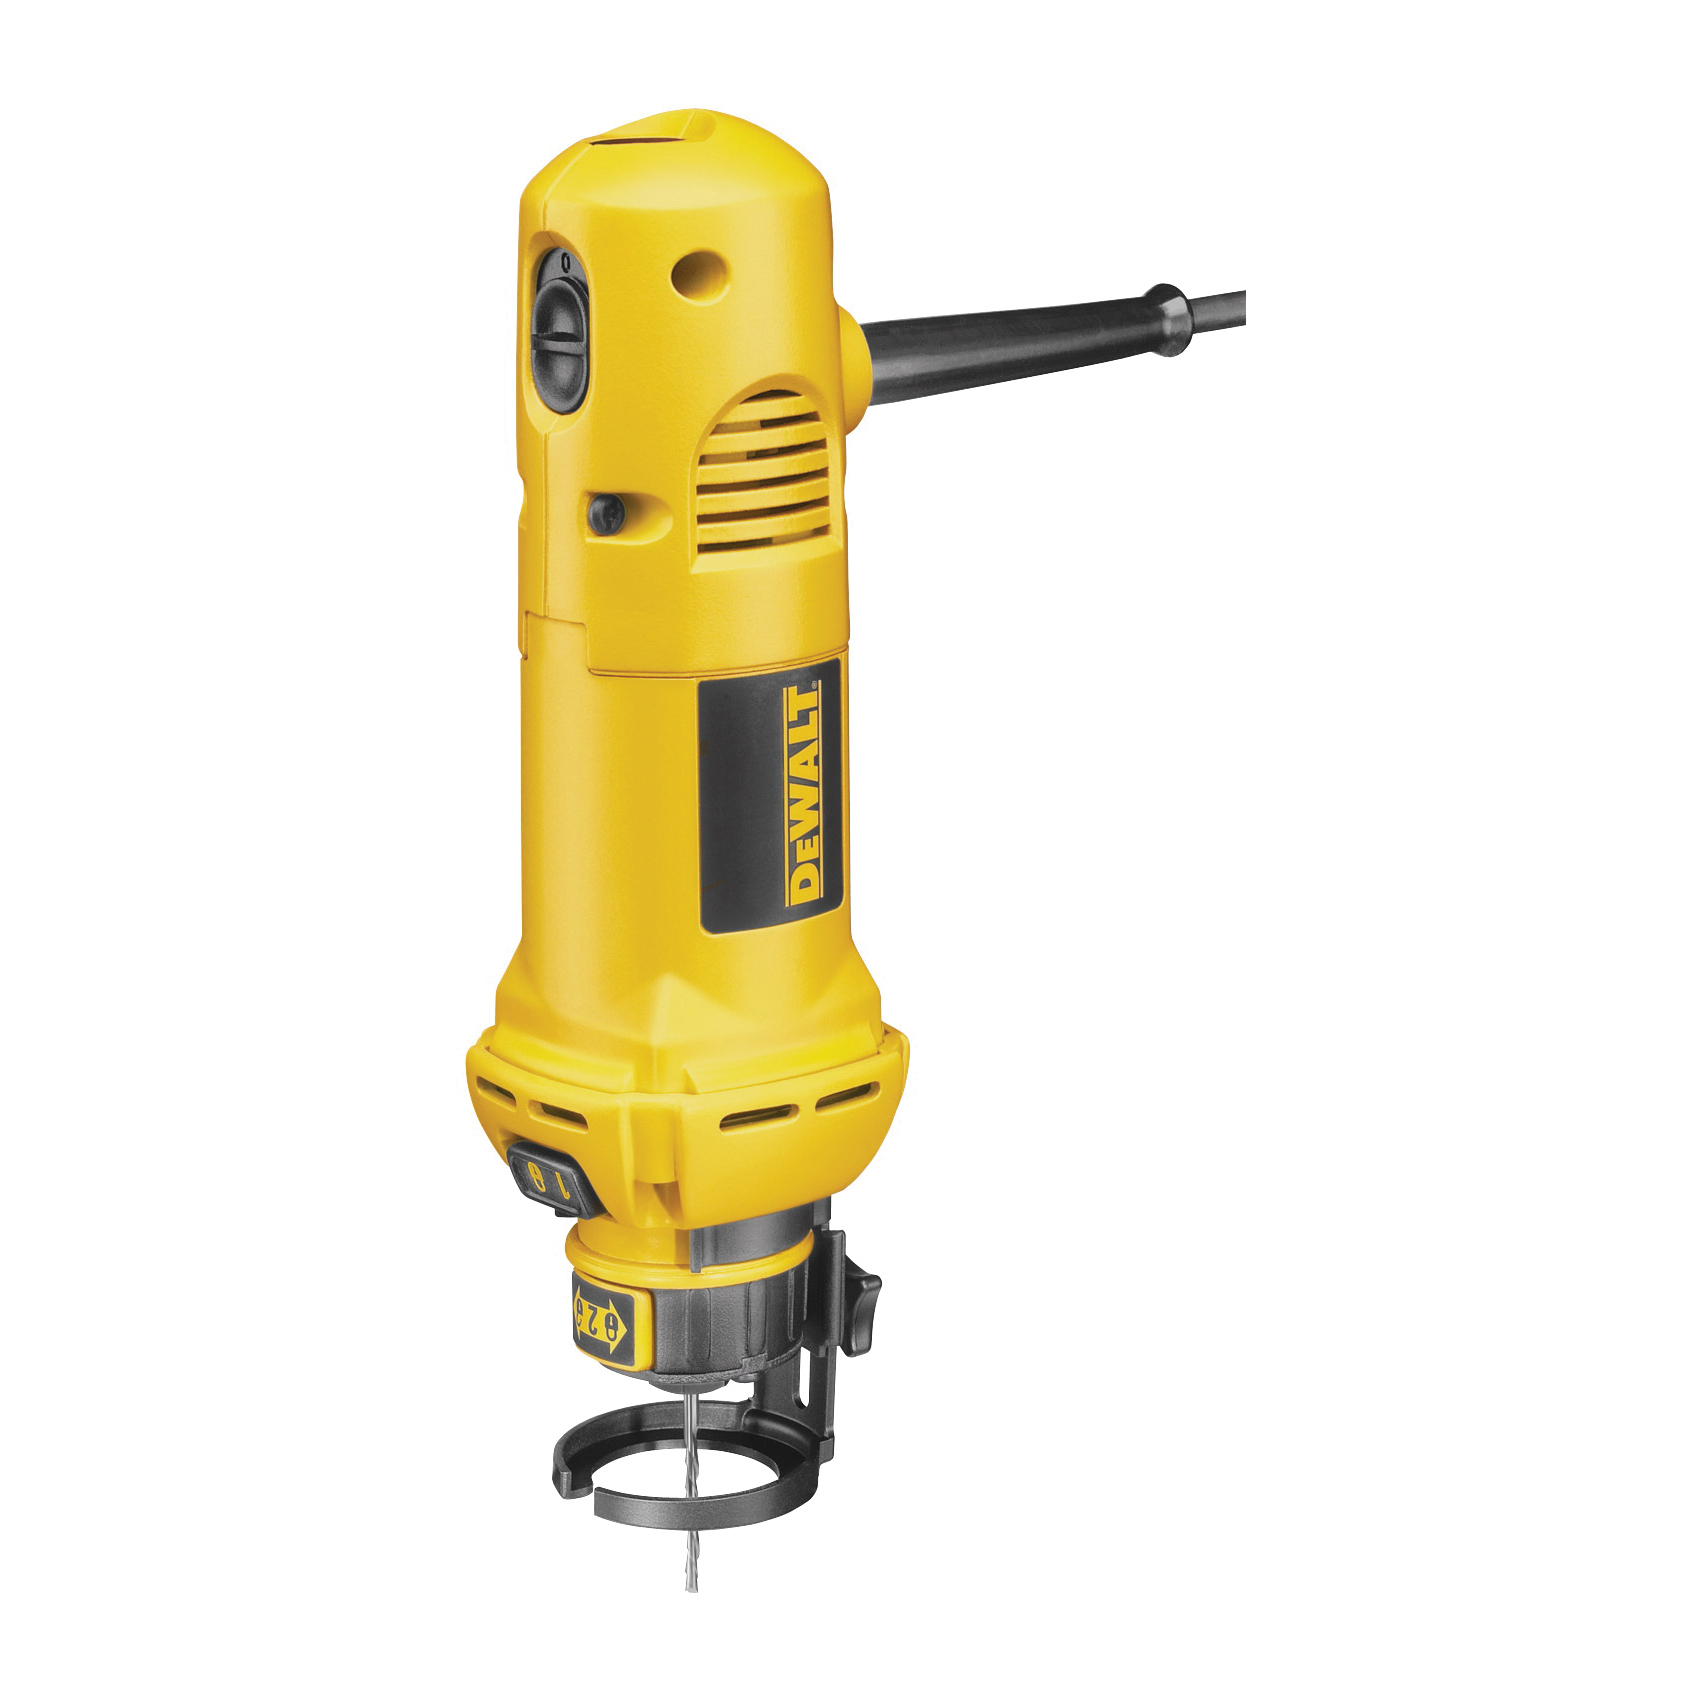 Picture of DeWALT DW660 Cut-Out Tool, 120 V, 5 A, 1 in Cutting Capacity, 1/4, 1/8 in Chuck, Collet Chuck, 30,000 rpm Speed